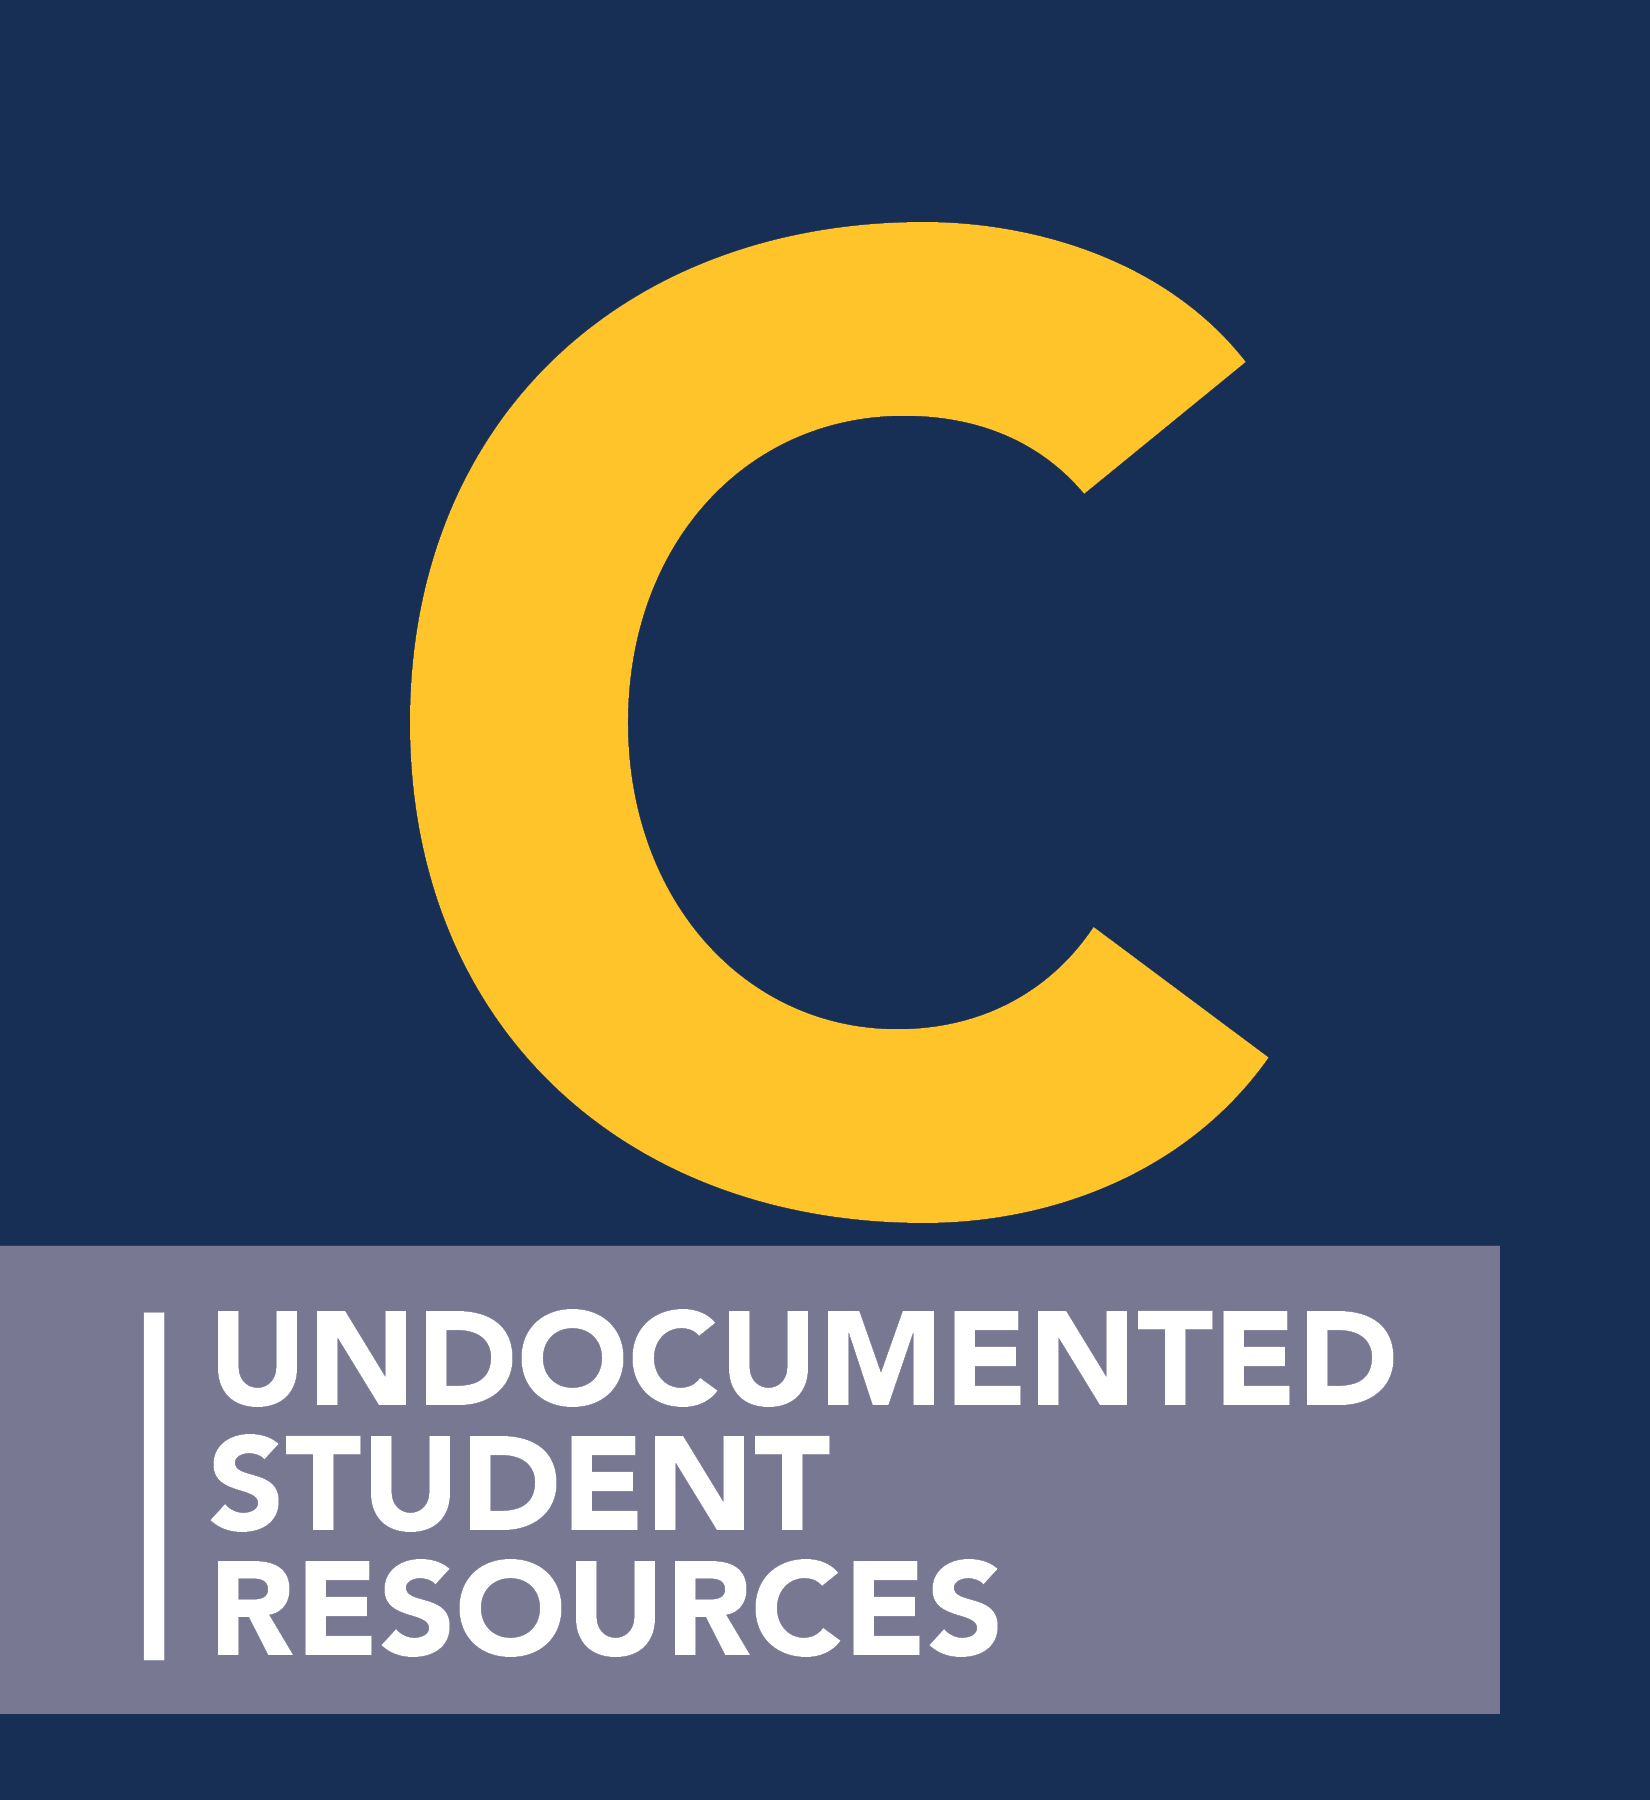 Undocumented Student Resources